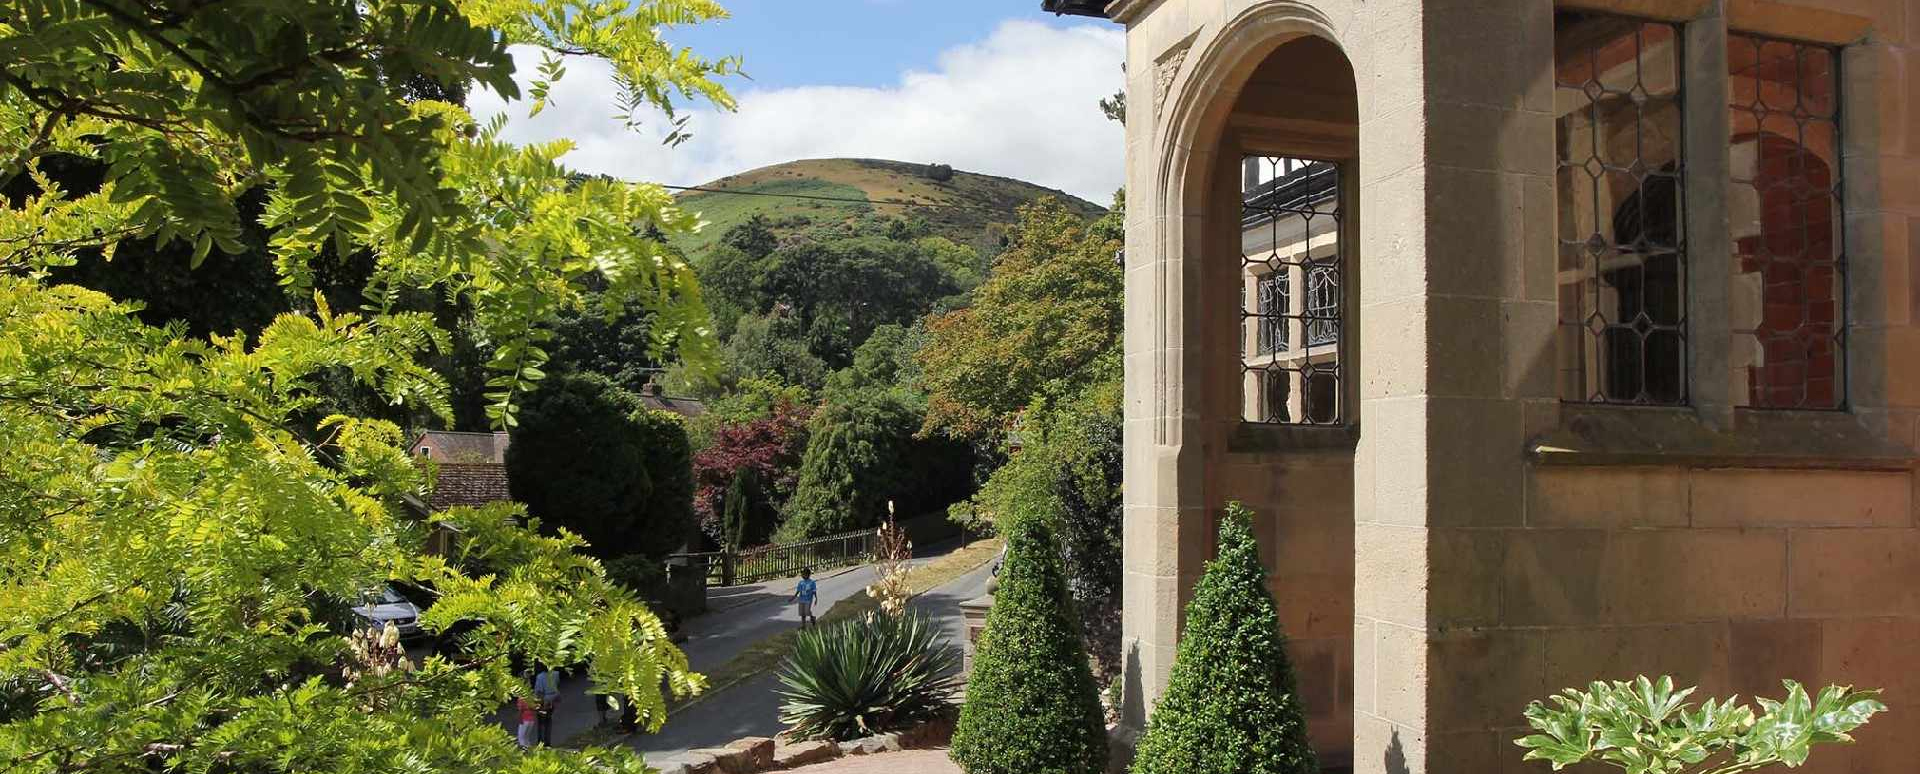 Arden House Luxury holiday apartments in Church Stretton Shropshire